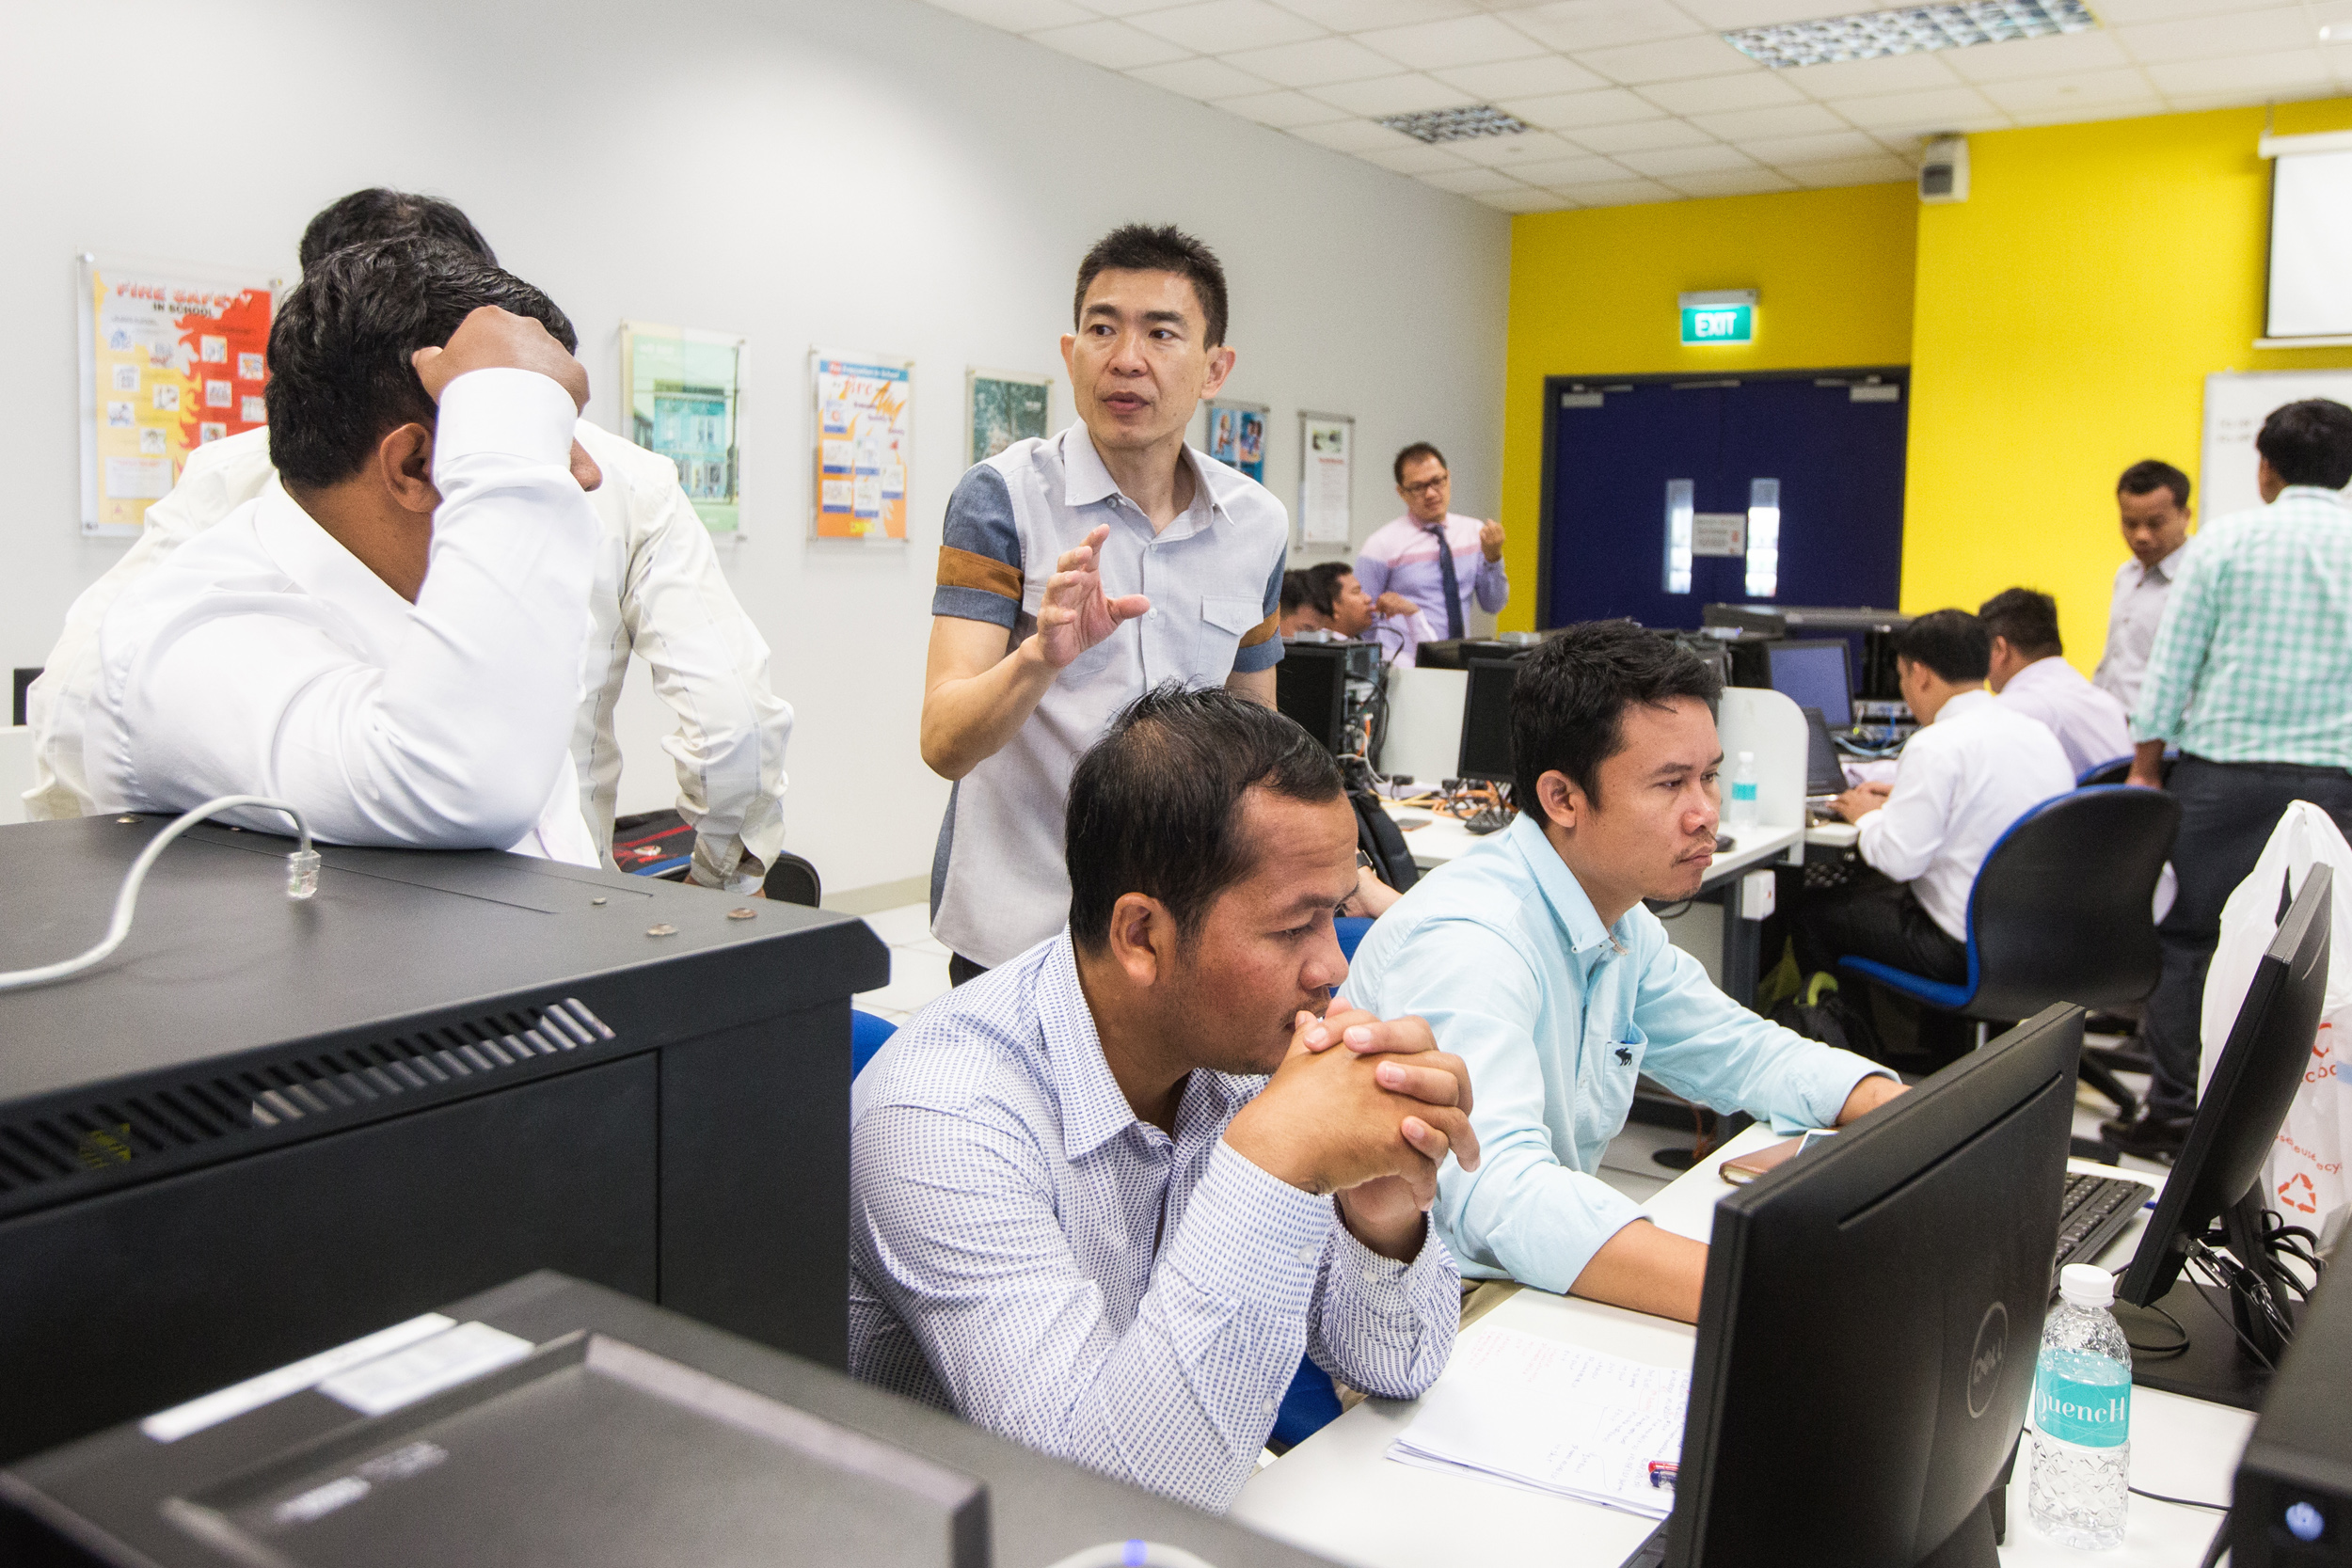 Desmond See (centre), 50, a senior lecturer from Singapore's Institute of Technical Education (ITE) College East, explaining the steps involved in setting up, configuring and testing a small network.